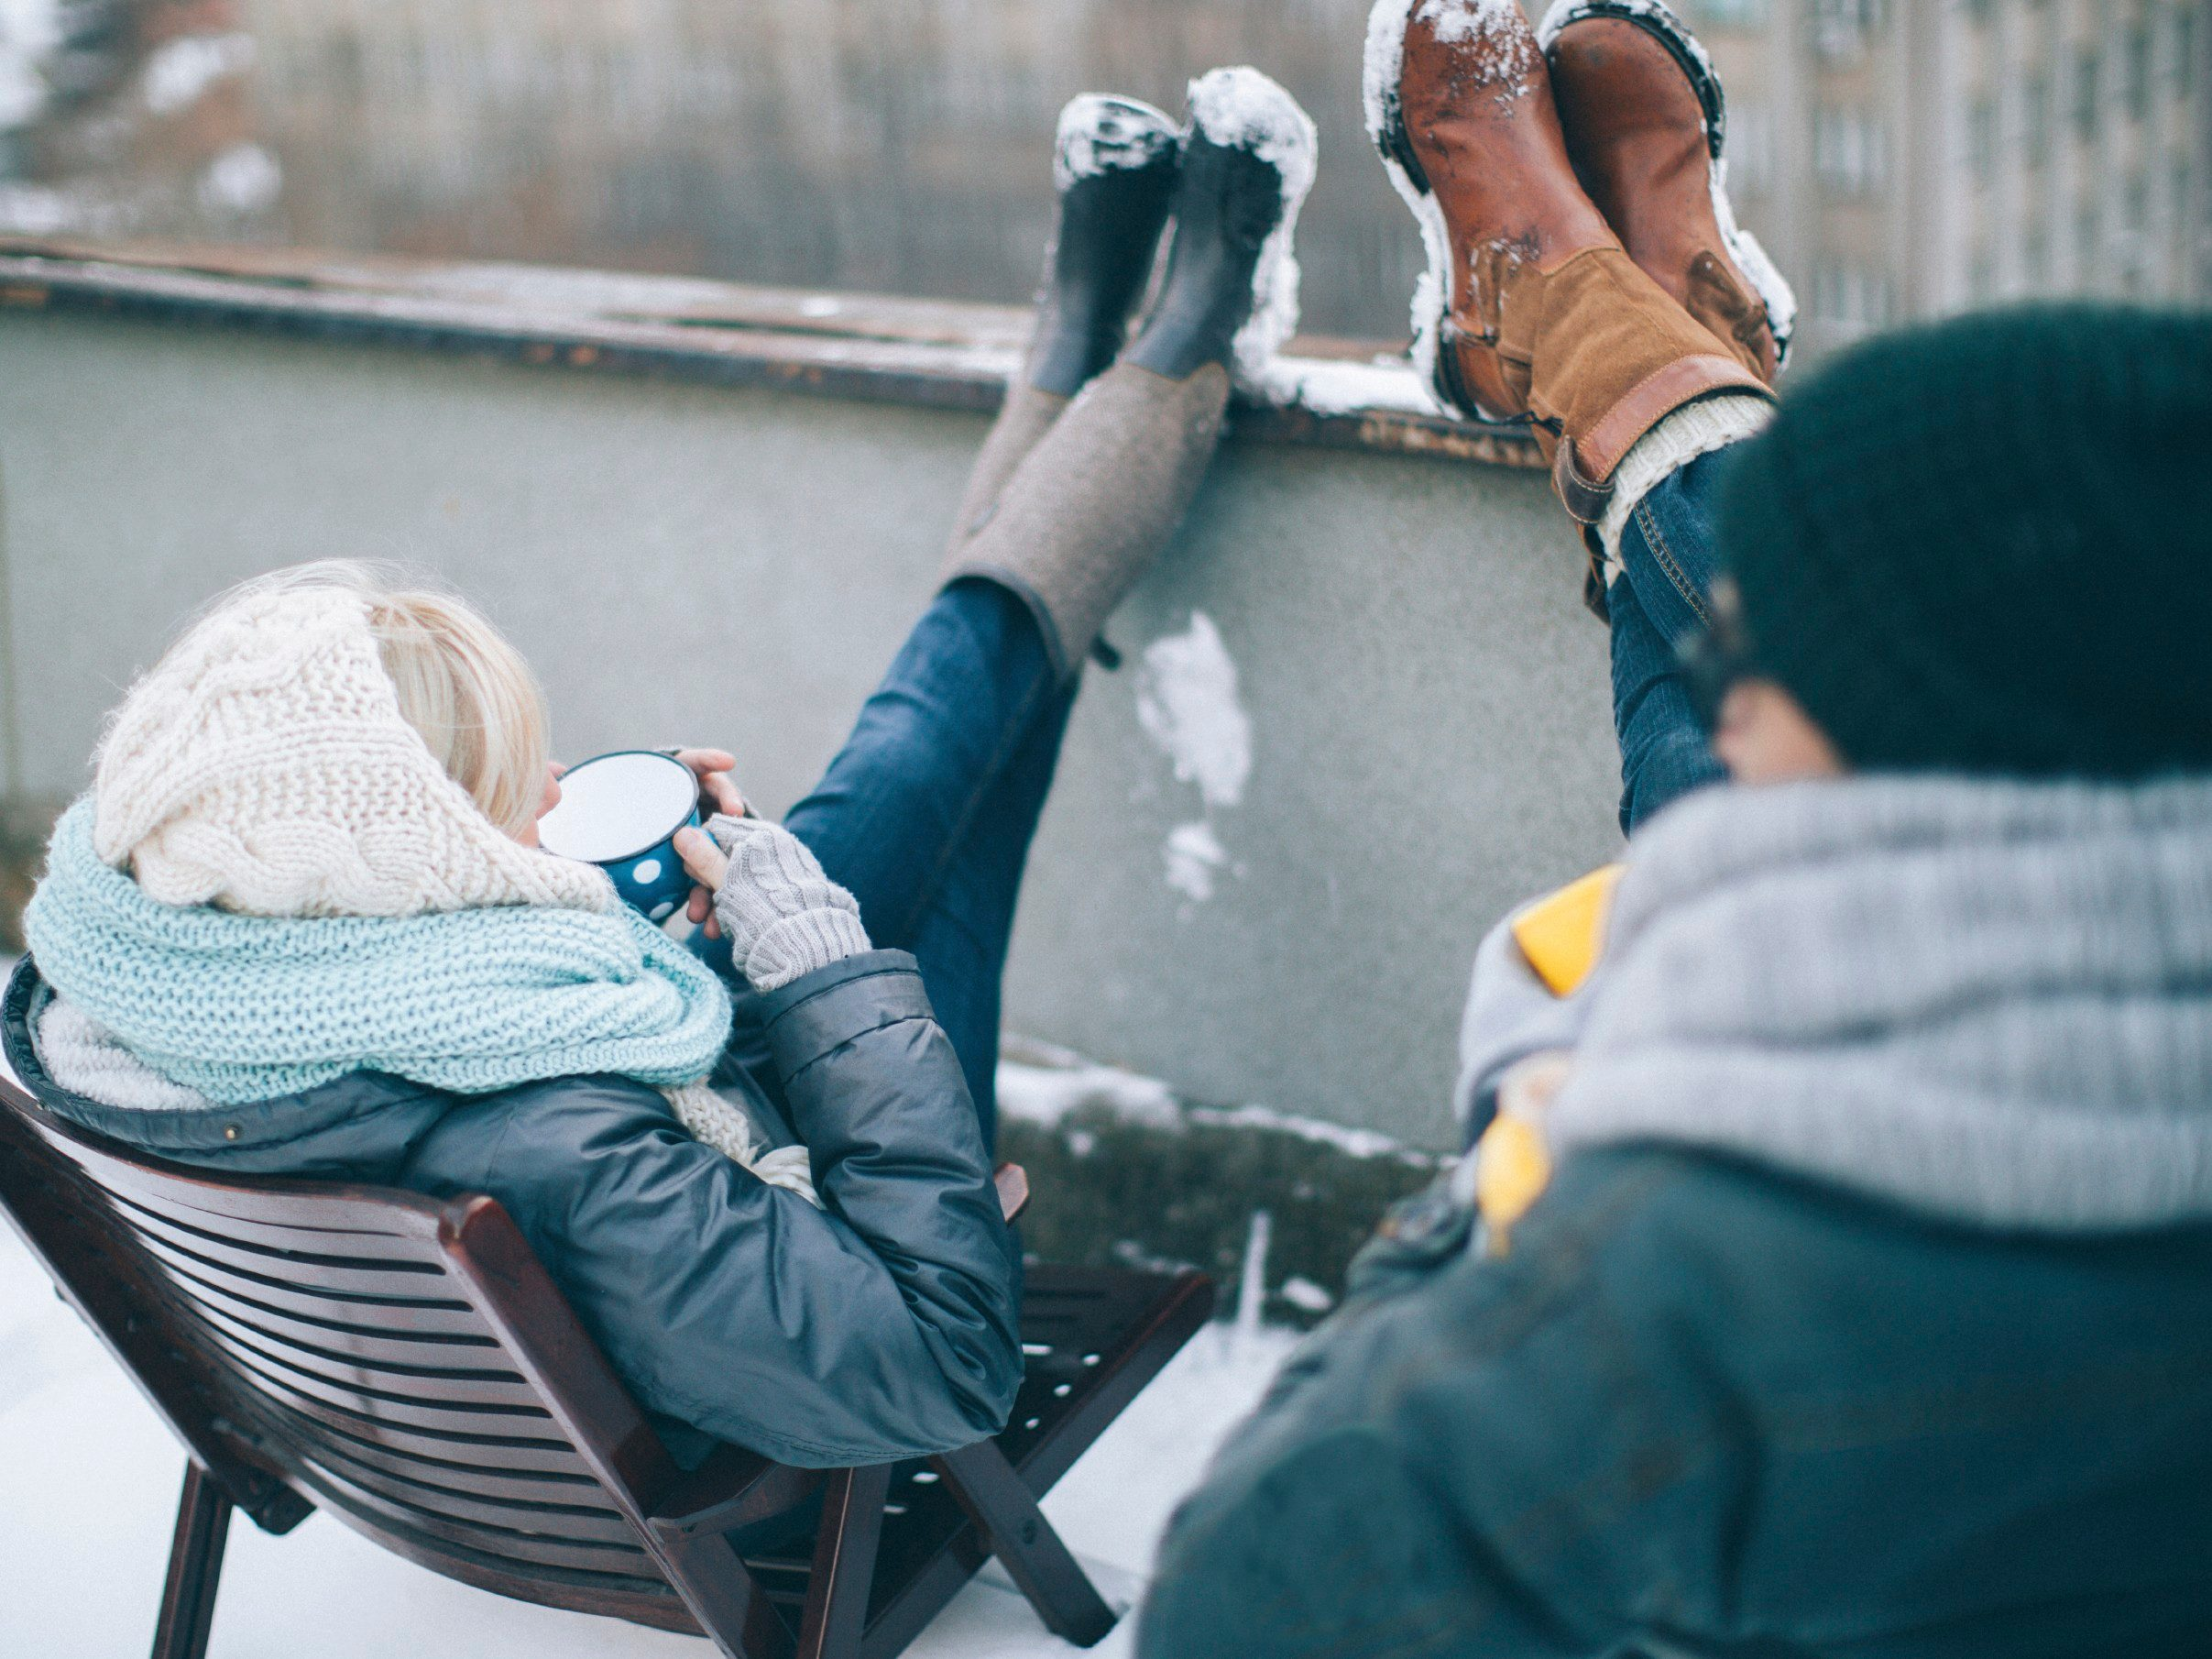 5. Keep your feet warm and dry